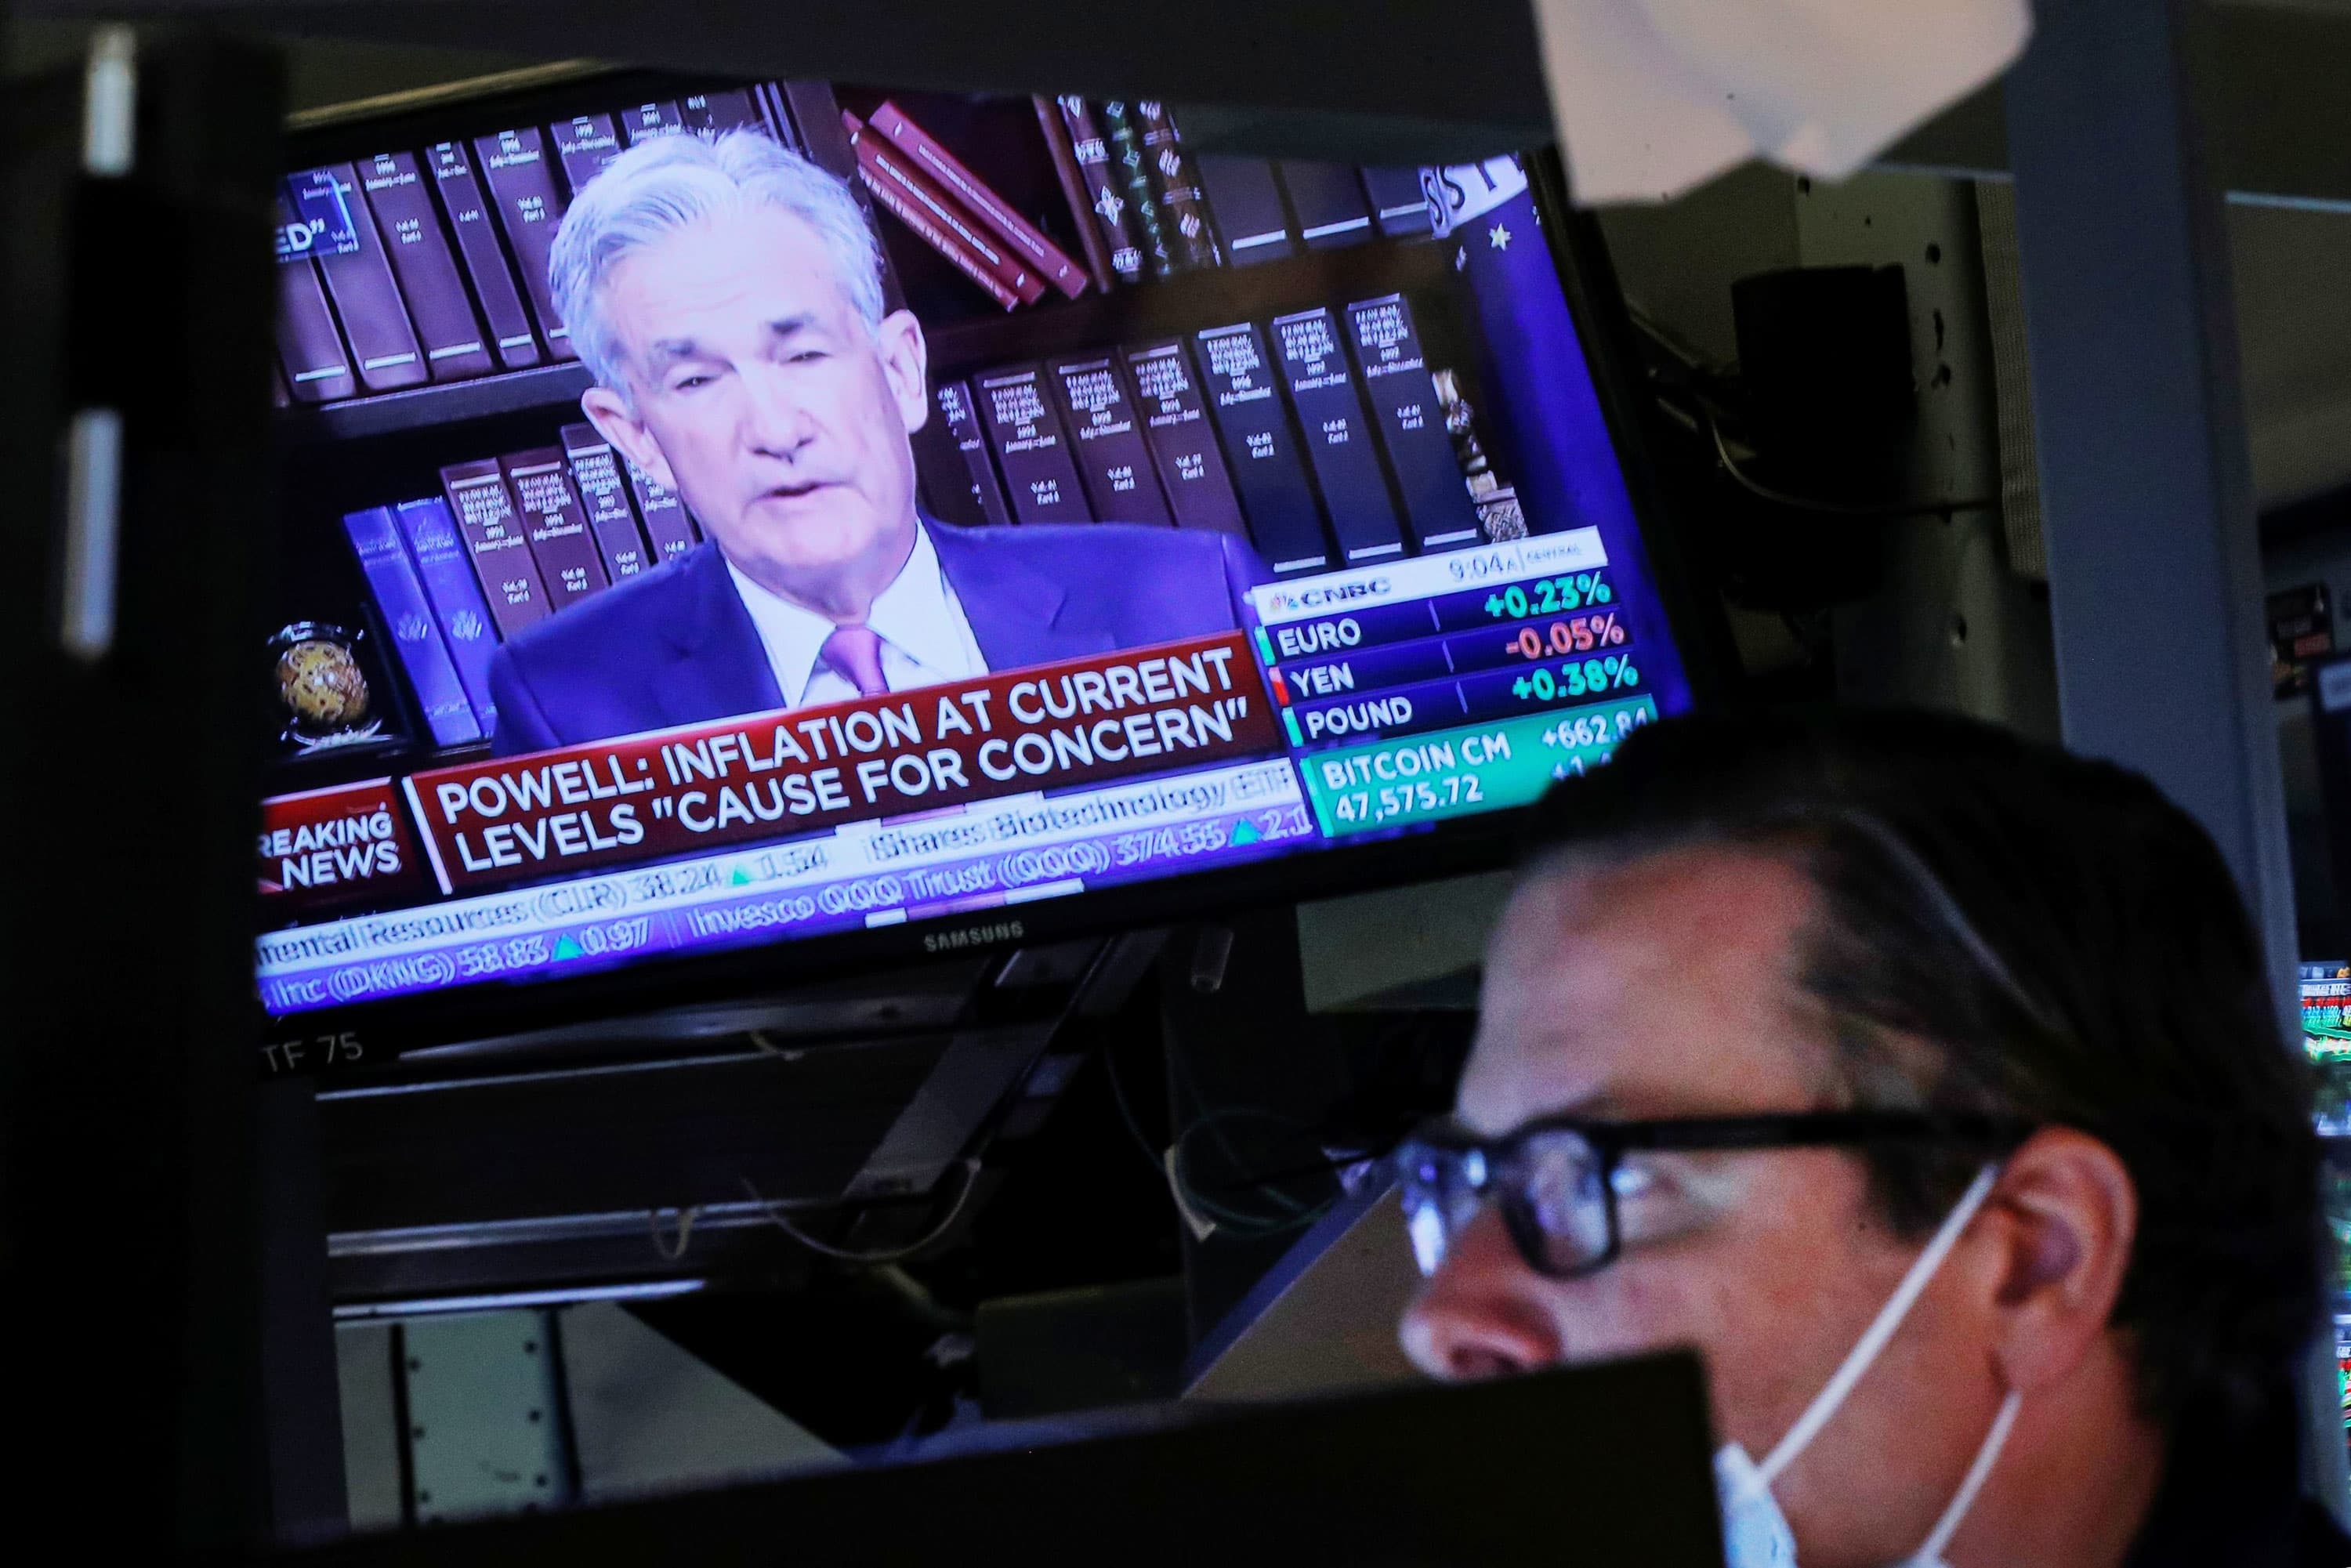 10-year Treasury yield climbs higher as investors focus on Fed's eventual taper - CNBC